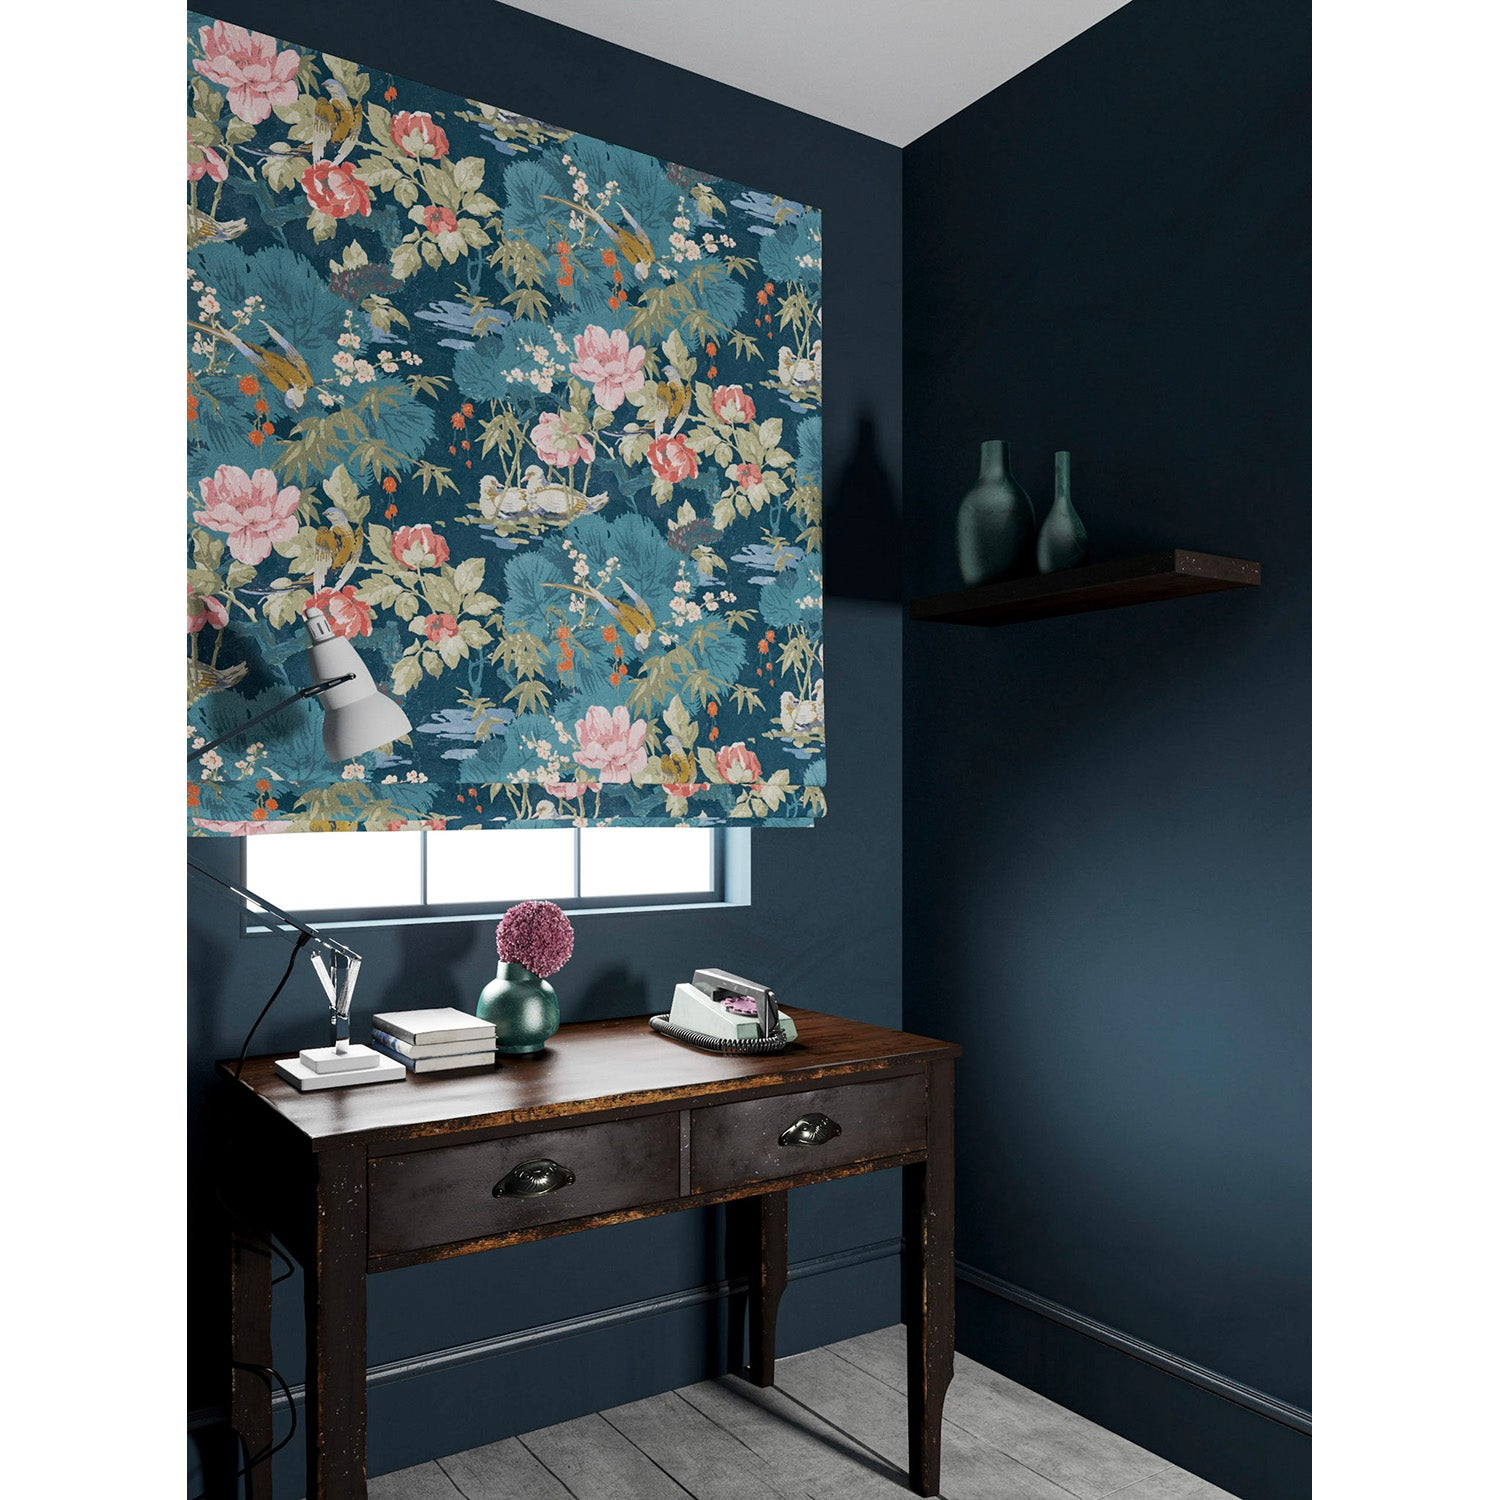 Velvet blind in a blue velvet upholstery fabric with floral and bird design with a stain resistant finish